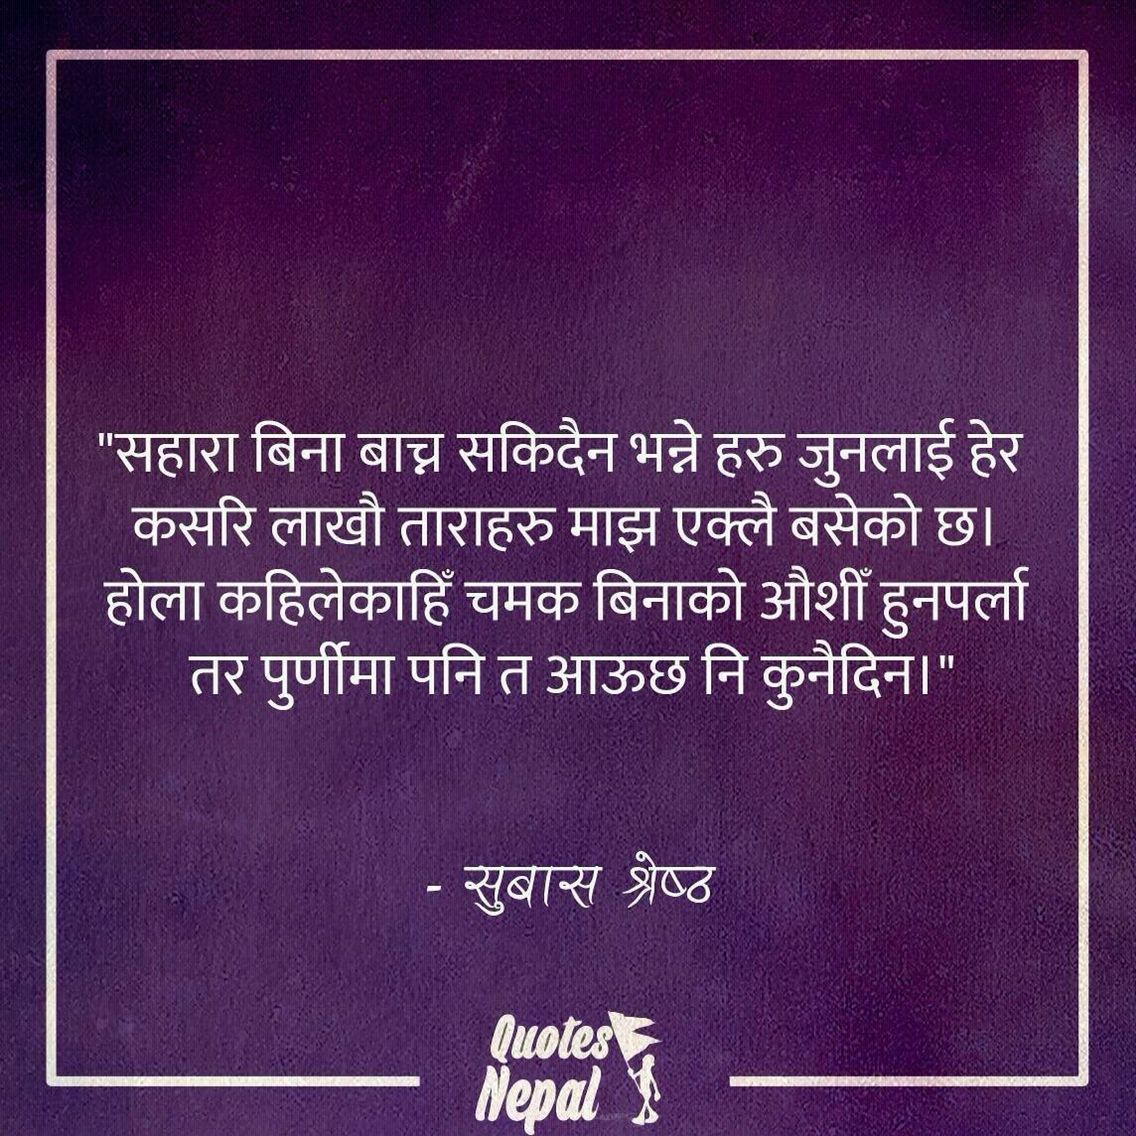 Inspirational quotes of life in nepali